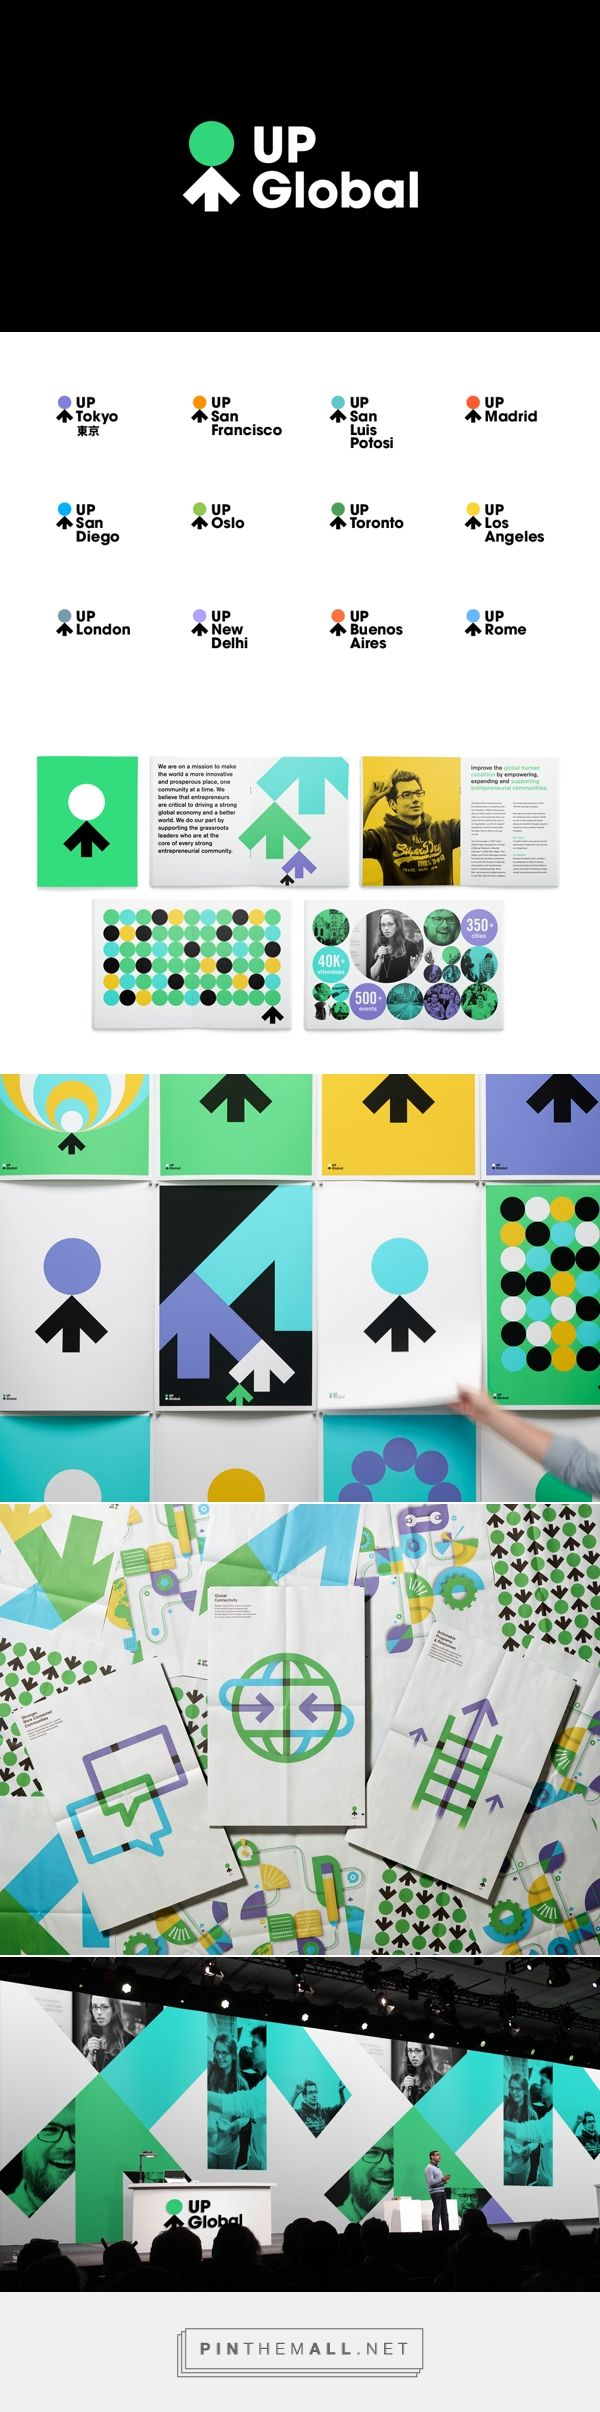 Up Global – Visual Identity System